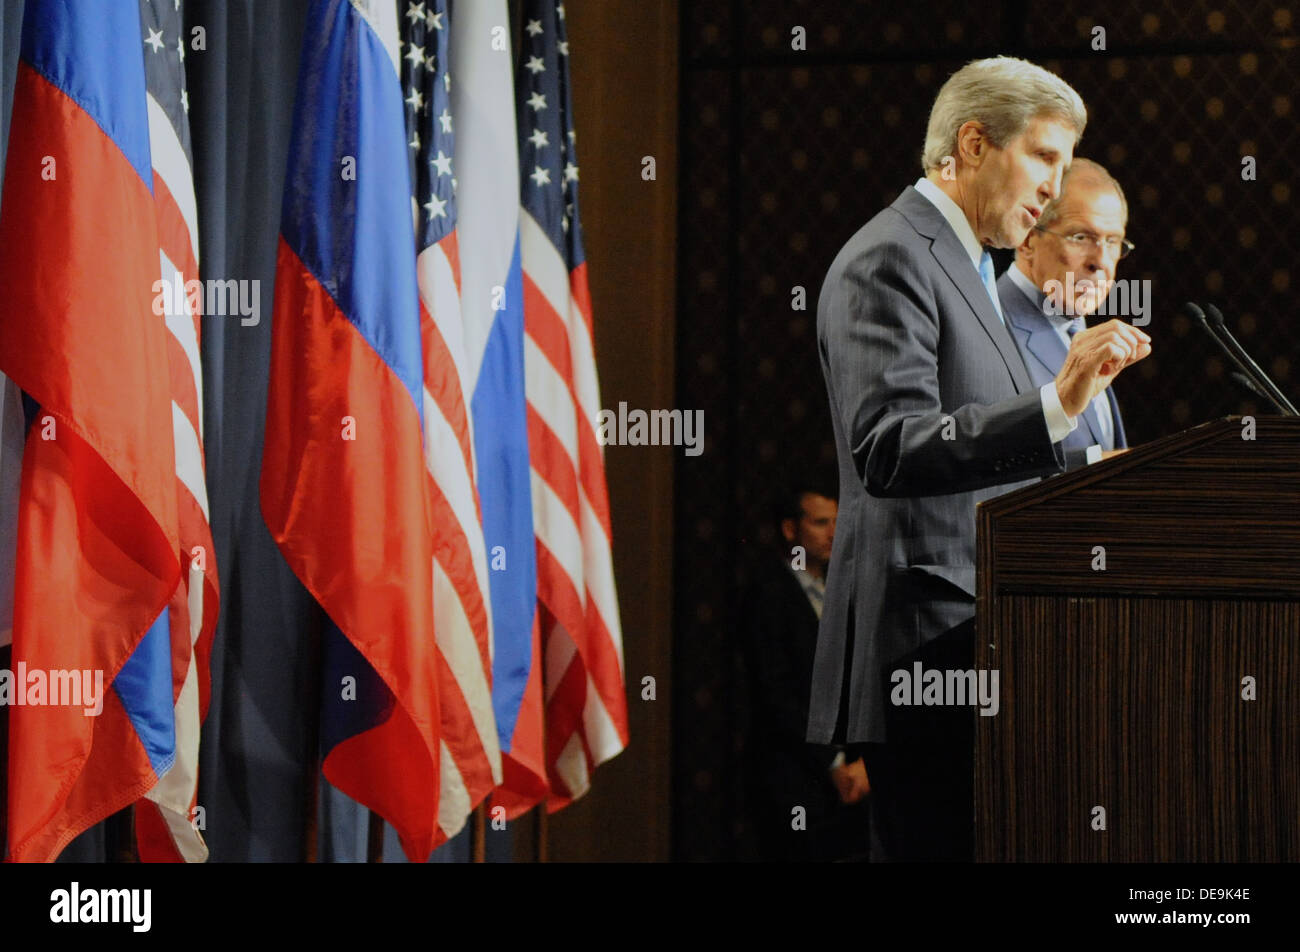 Secretary Kerry Speaks at the Start of Talks with Russian Foreign Minister Lavrov - Stock Image